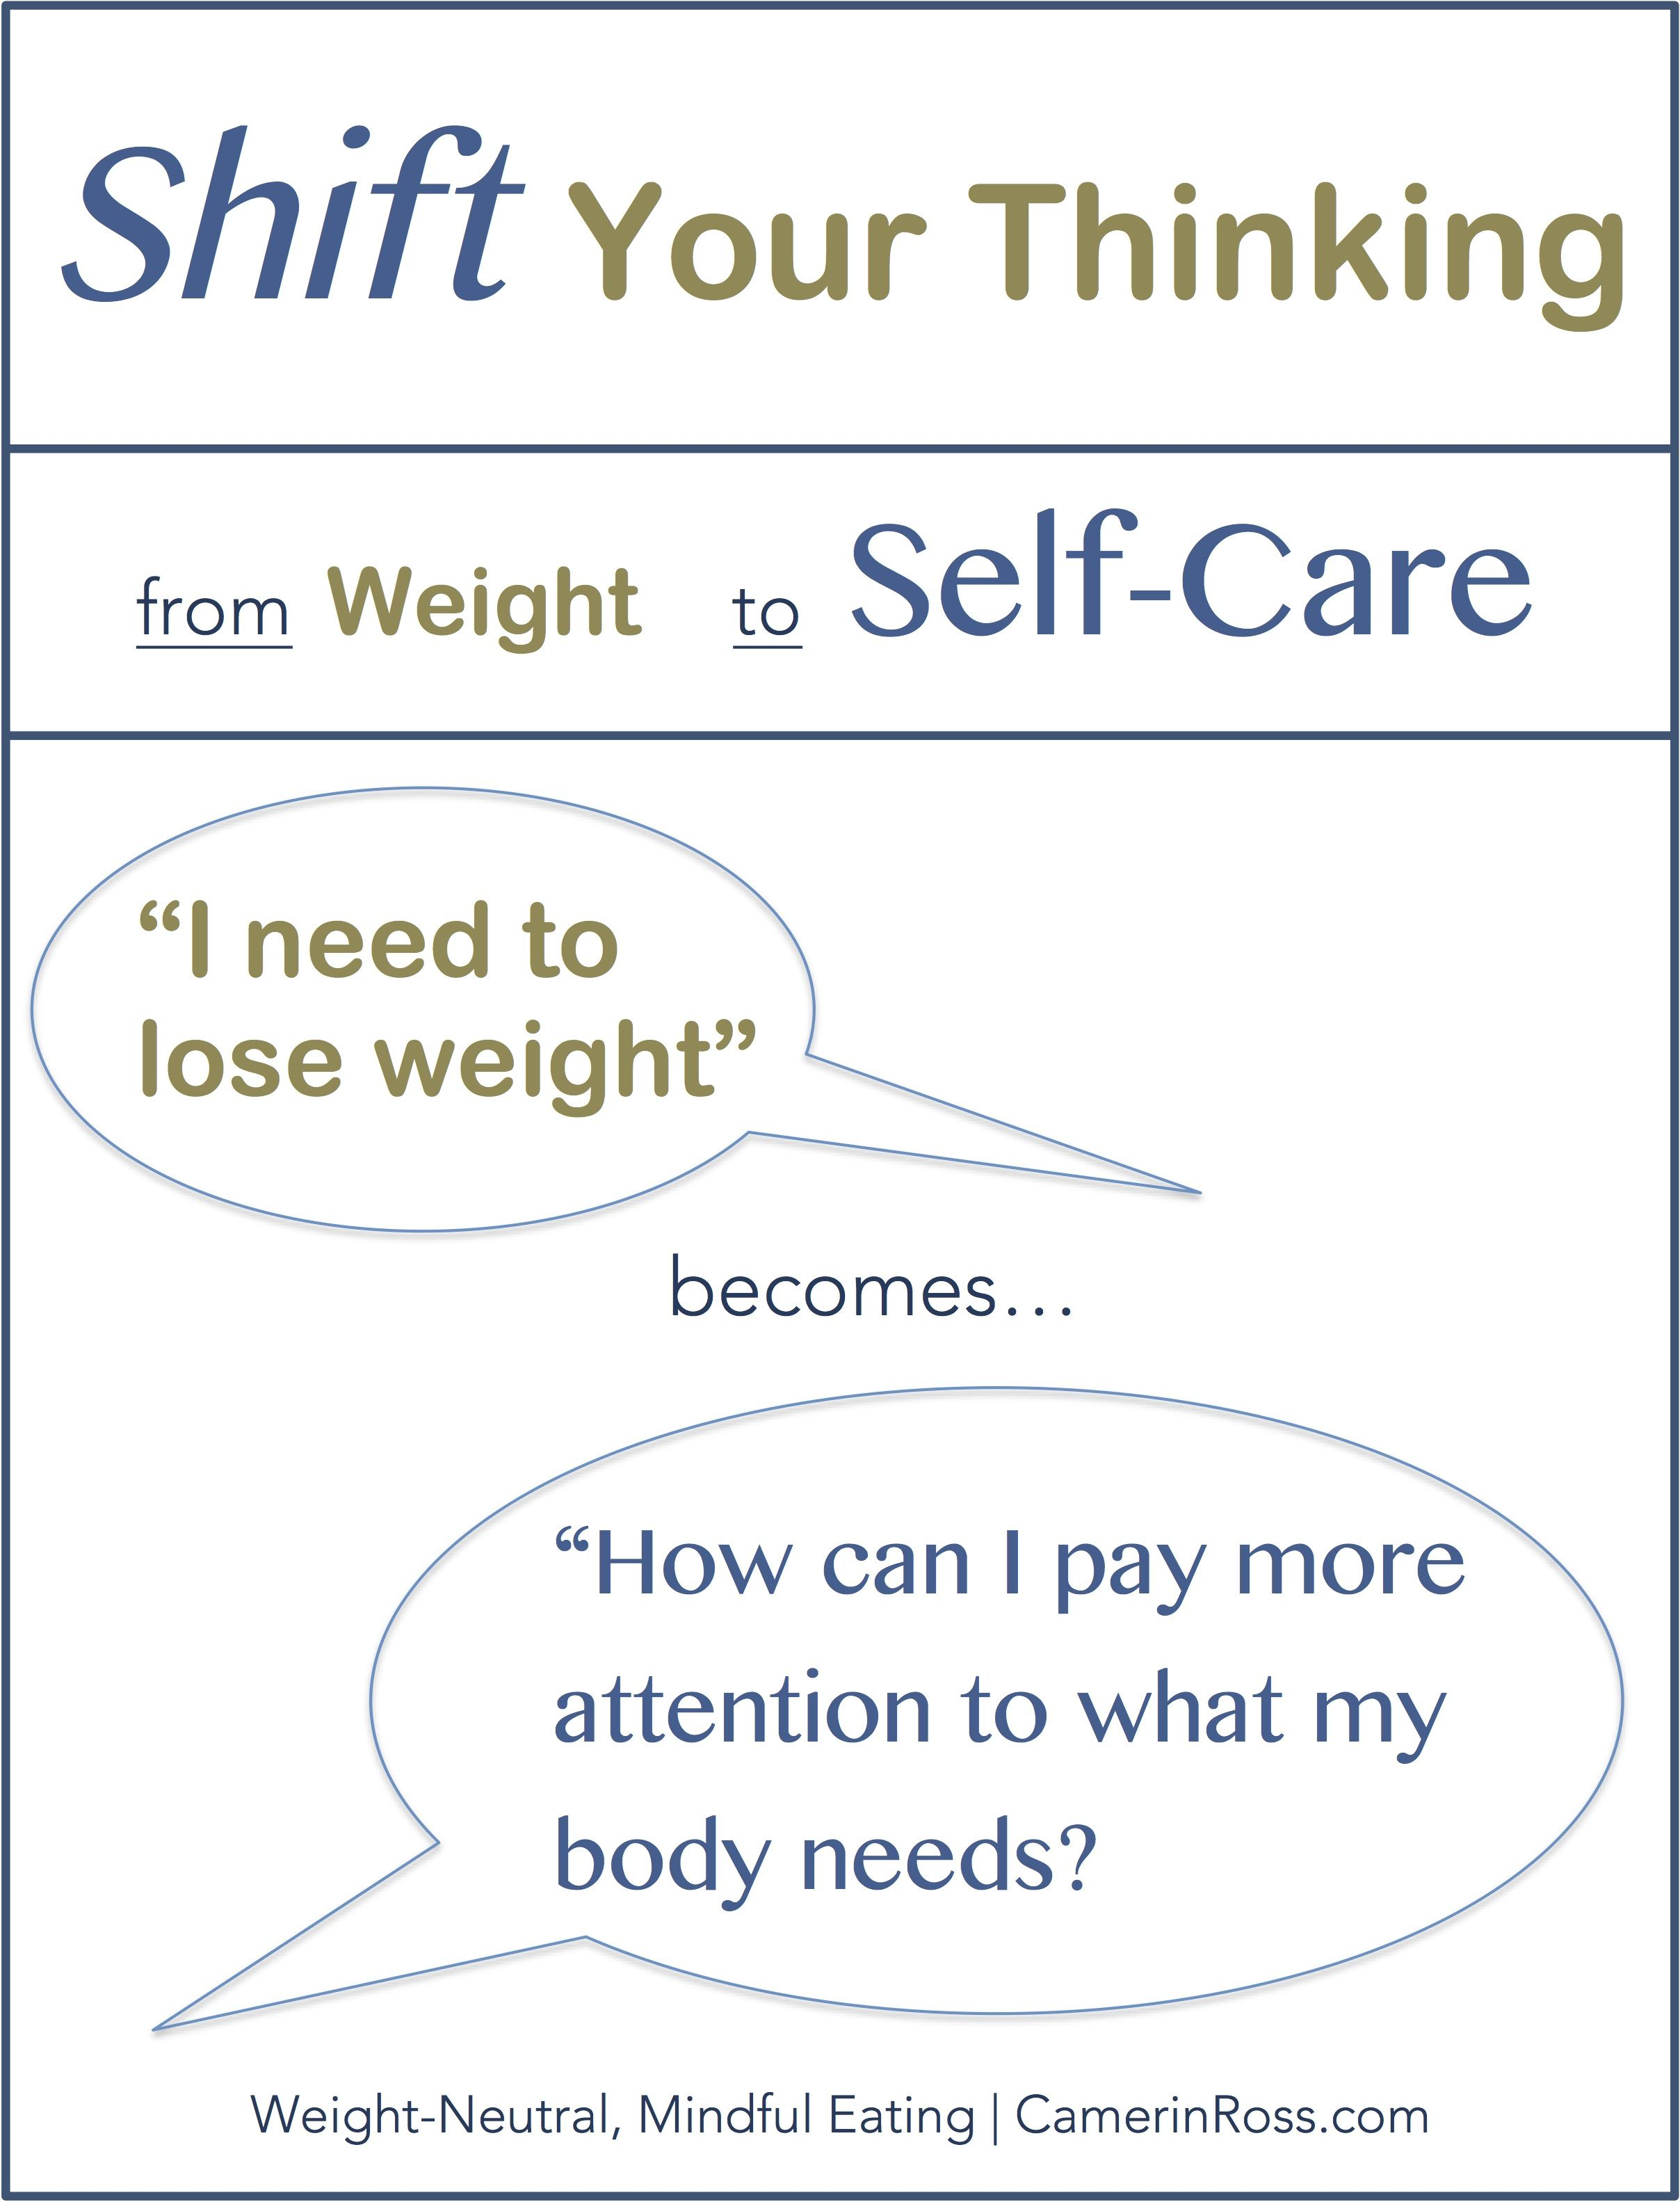 WeightNeutral Mindful Eating Tip Shift Your Thinking From